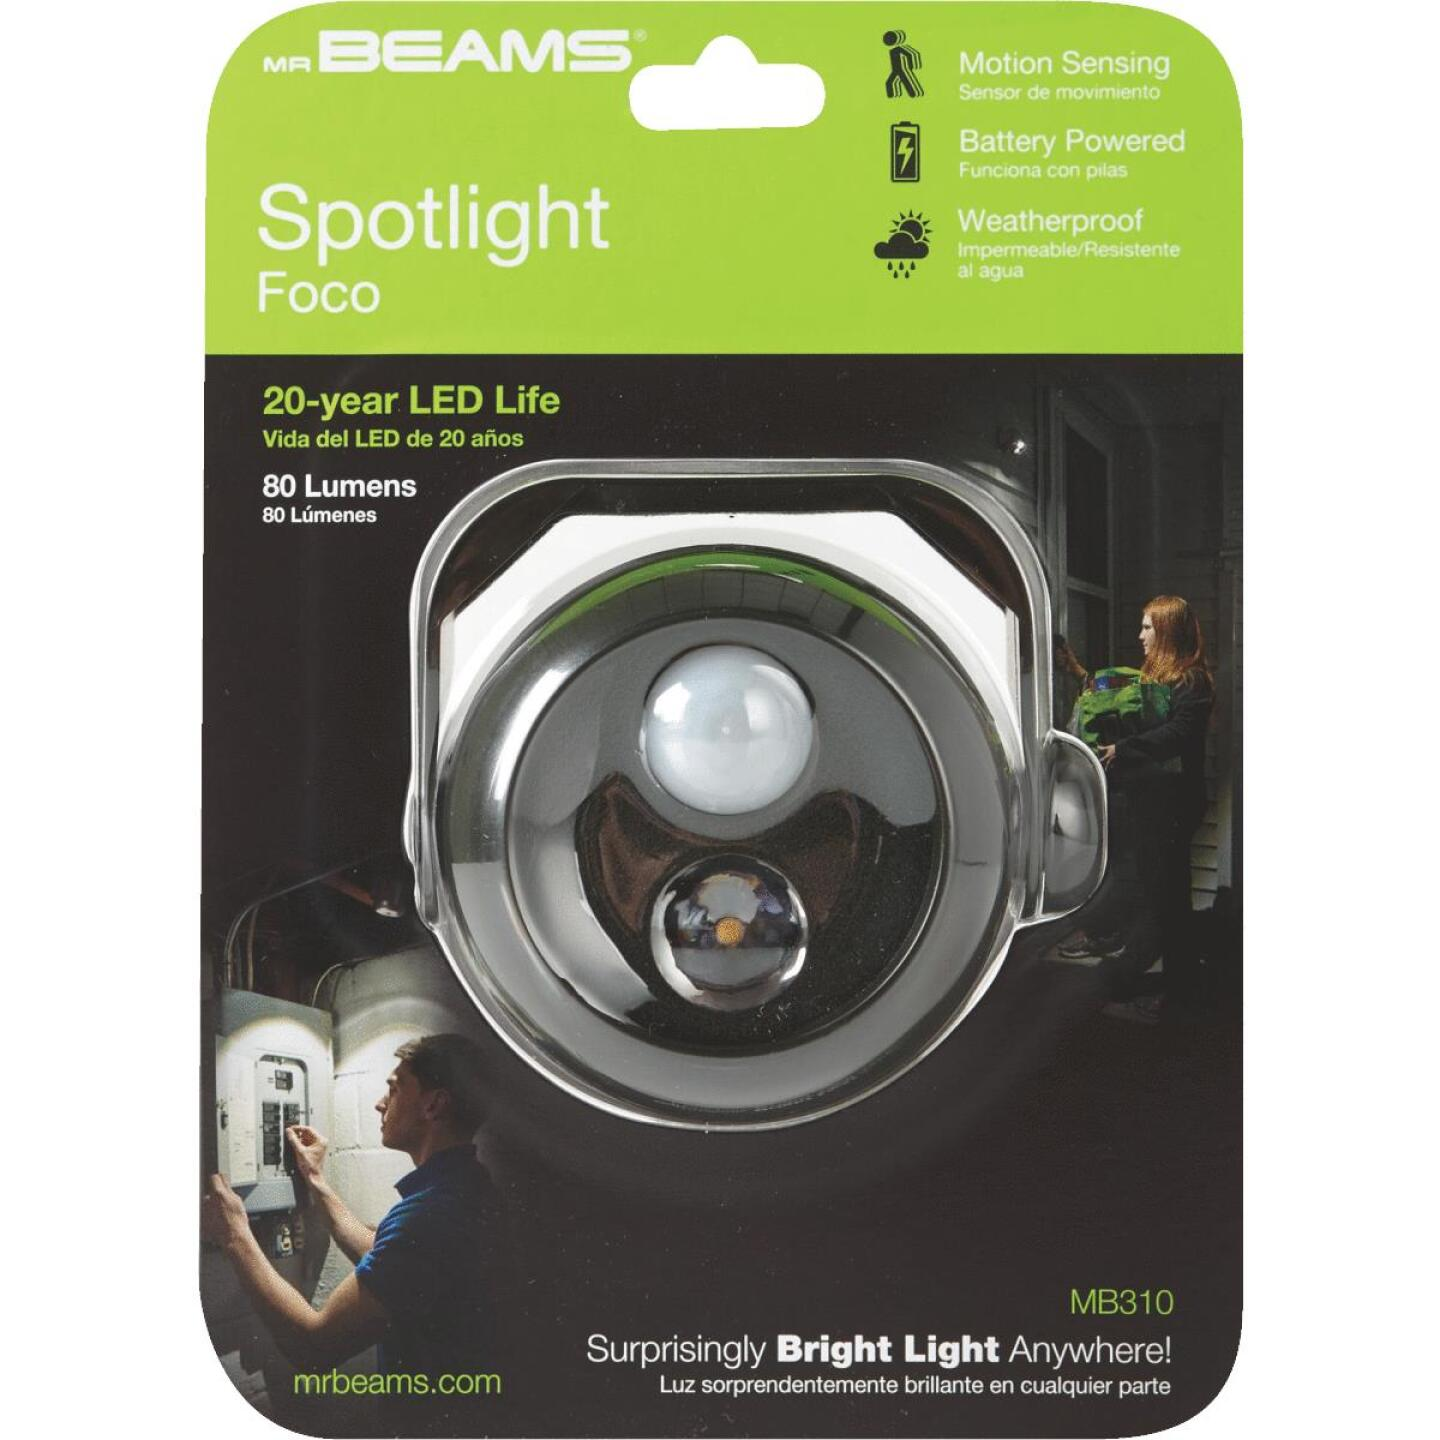 Mr. Beams 80-Lumen Brown Motion Sensing/Dusk-To-Dawn Spotlight Outdoor Battery Operated LED Light Fixture Image 2